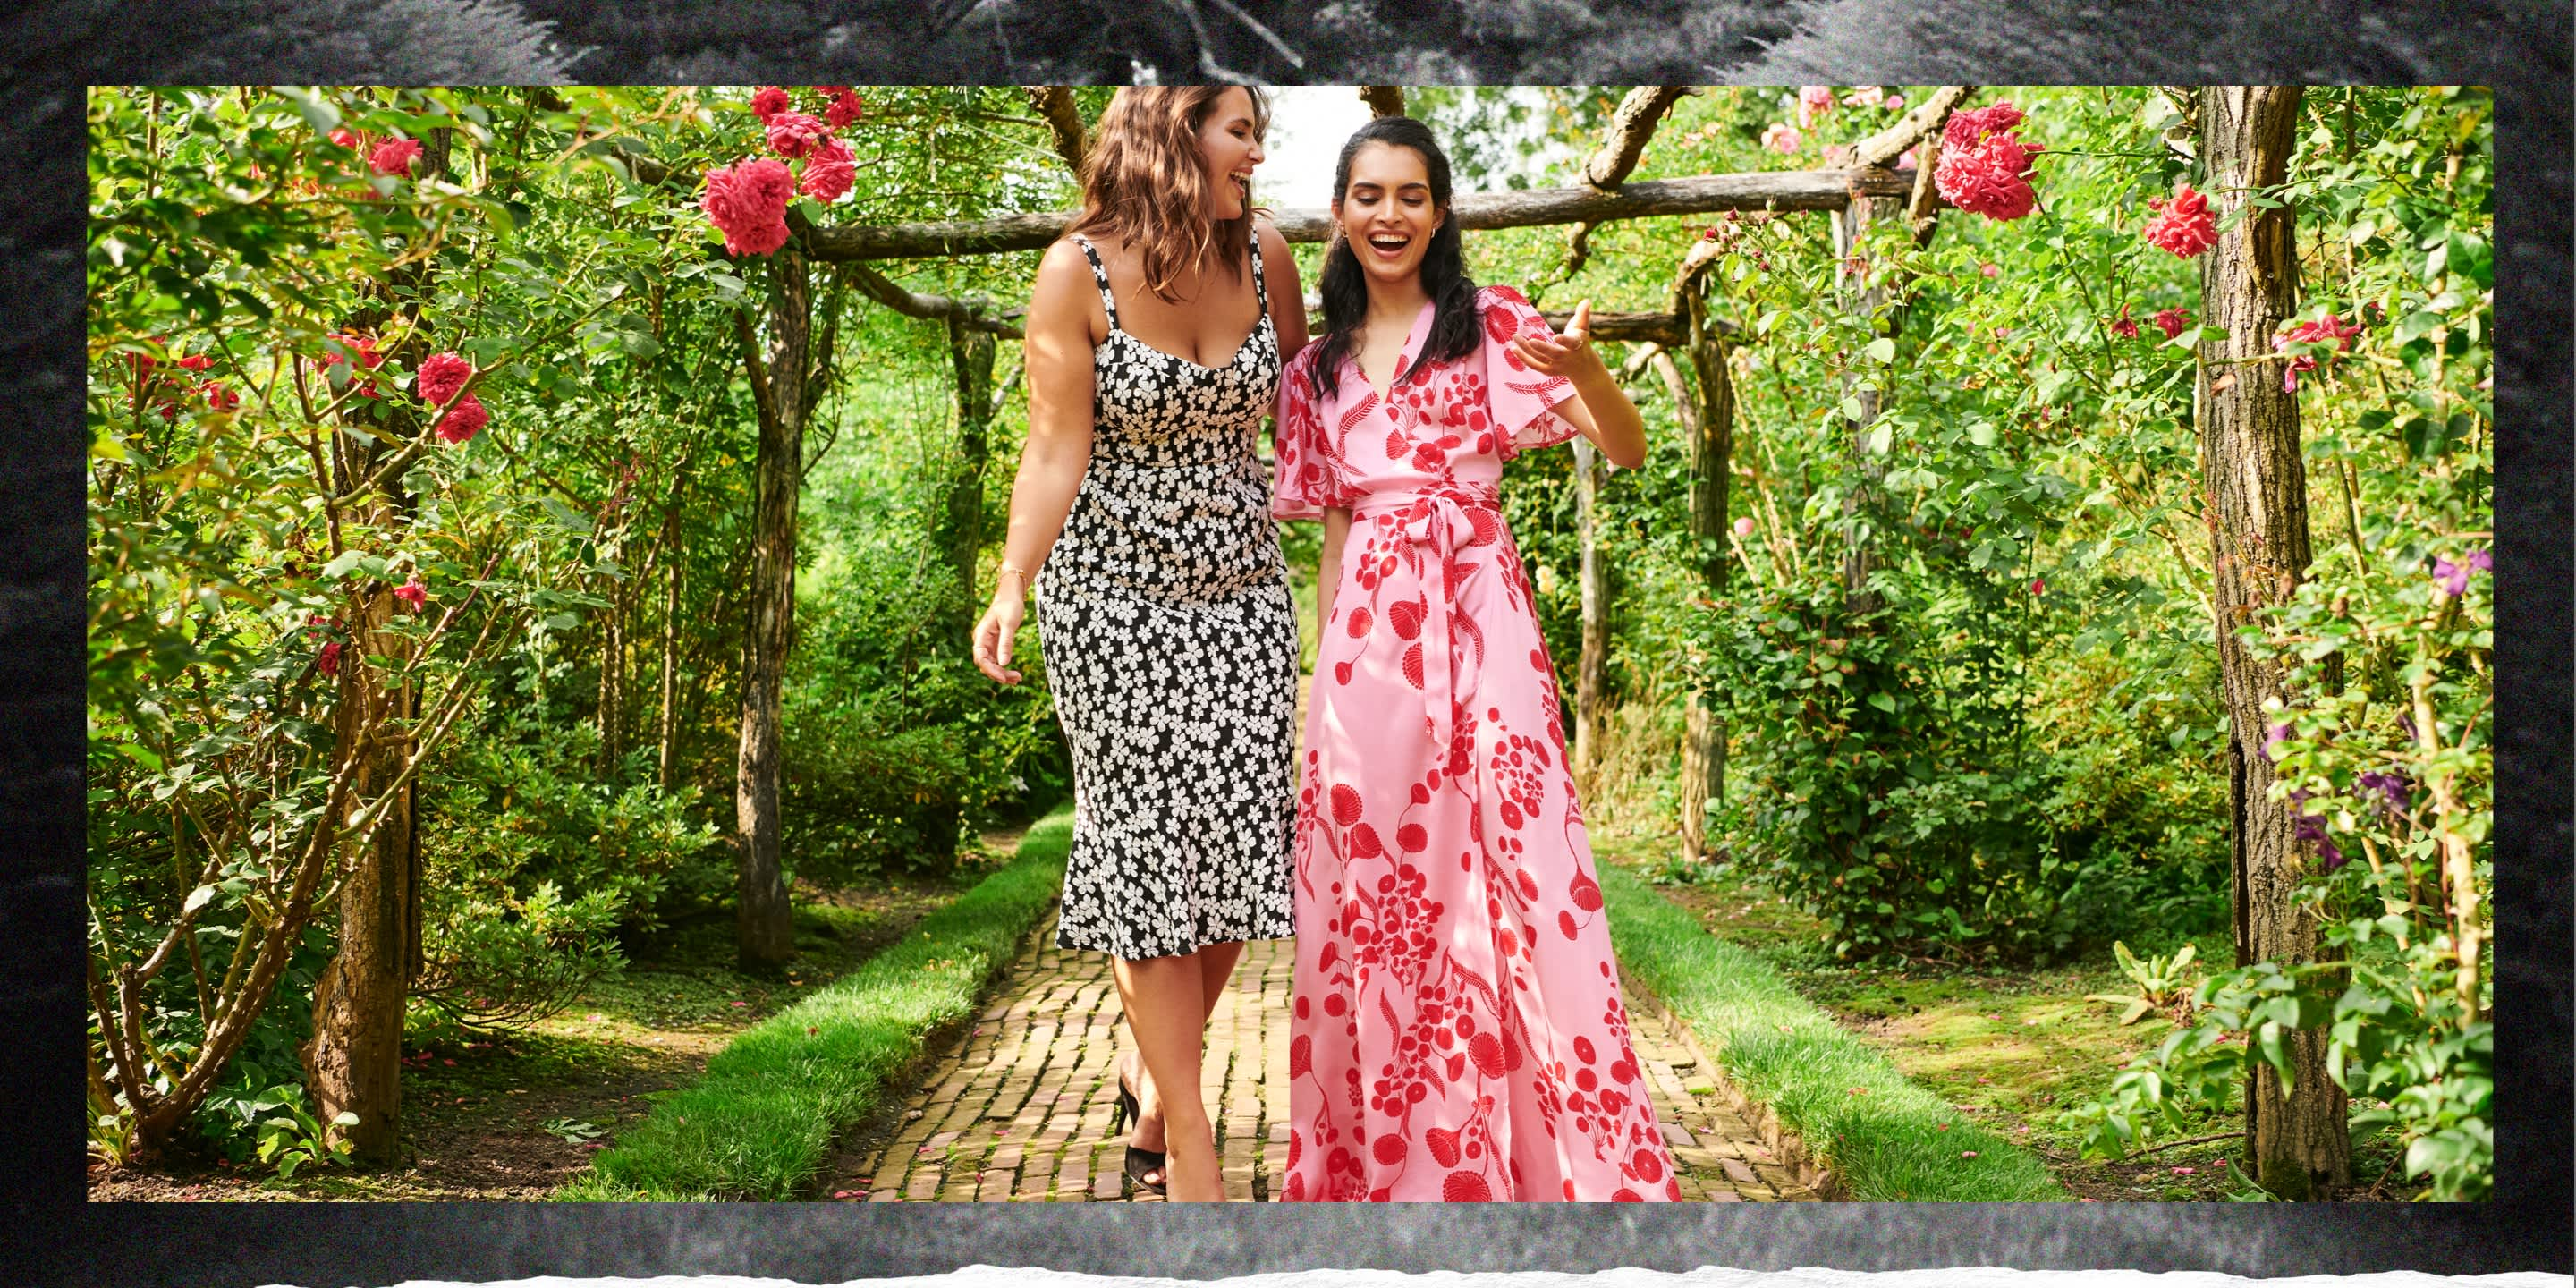 Models wearing occasion dresses in a luscious rose garden.